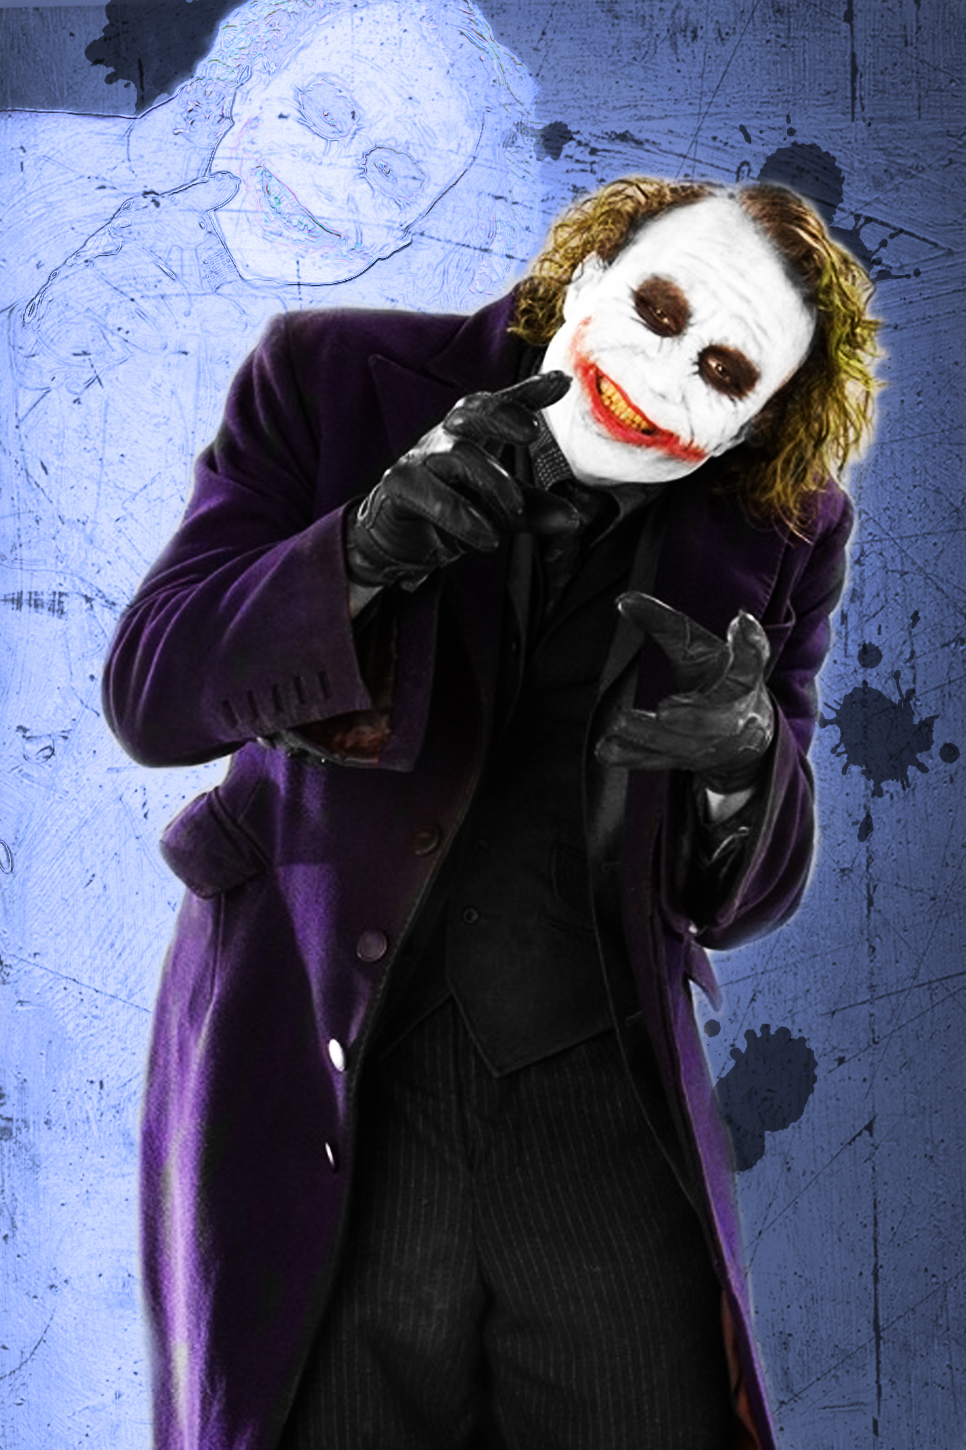 The Joker Why So Serious By Ronnie8886